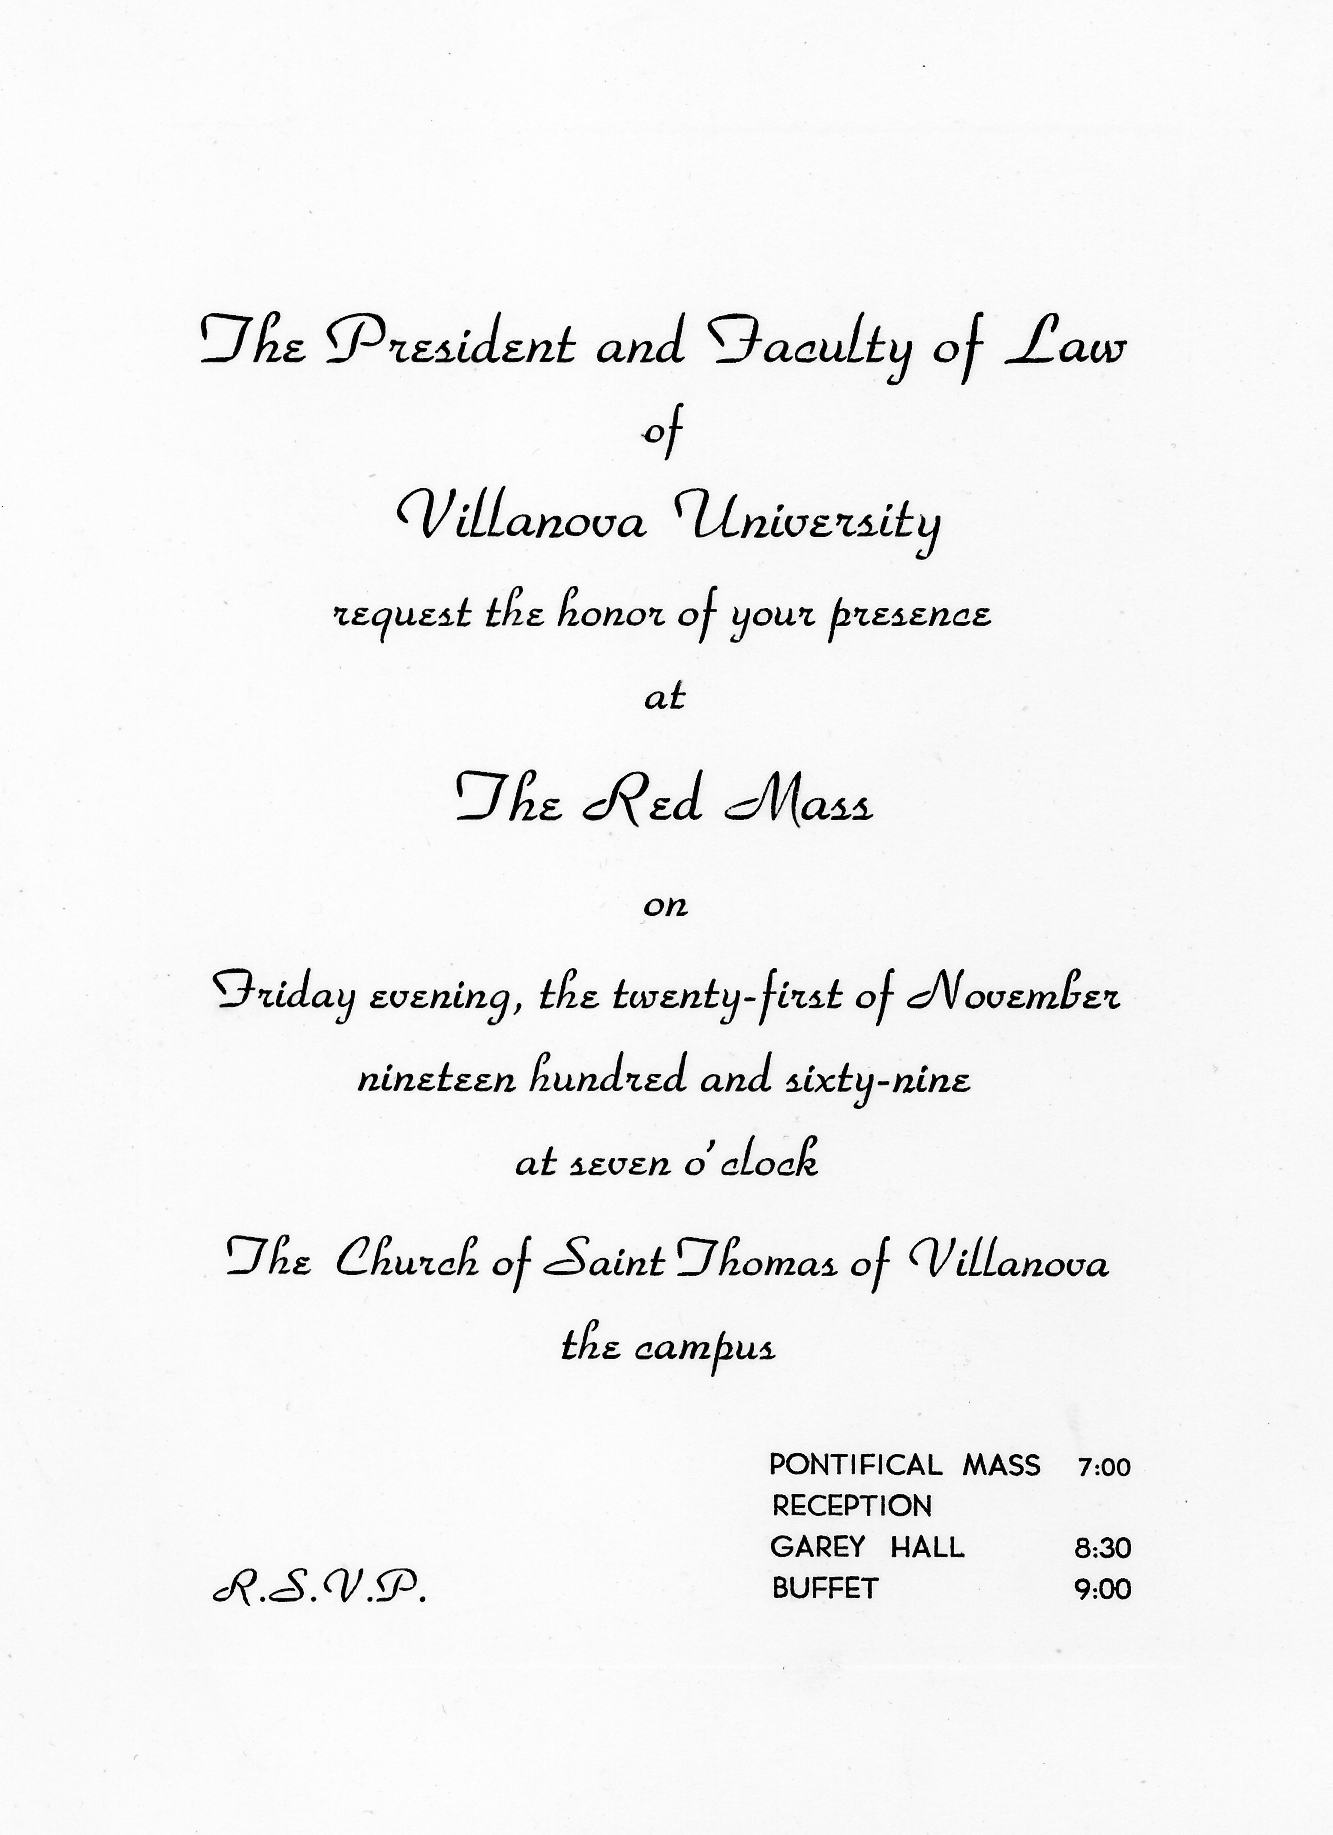 Invitation to Red Mass, 1969